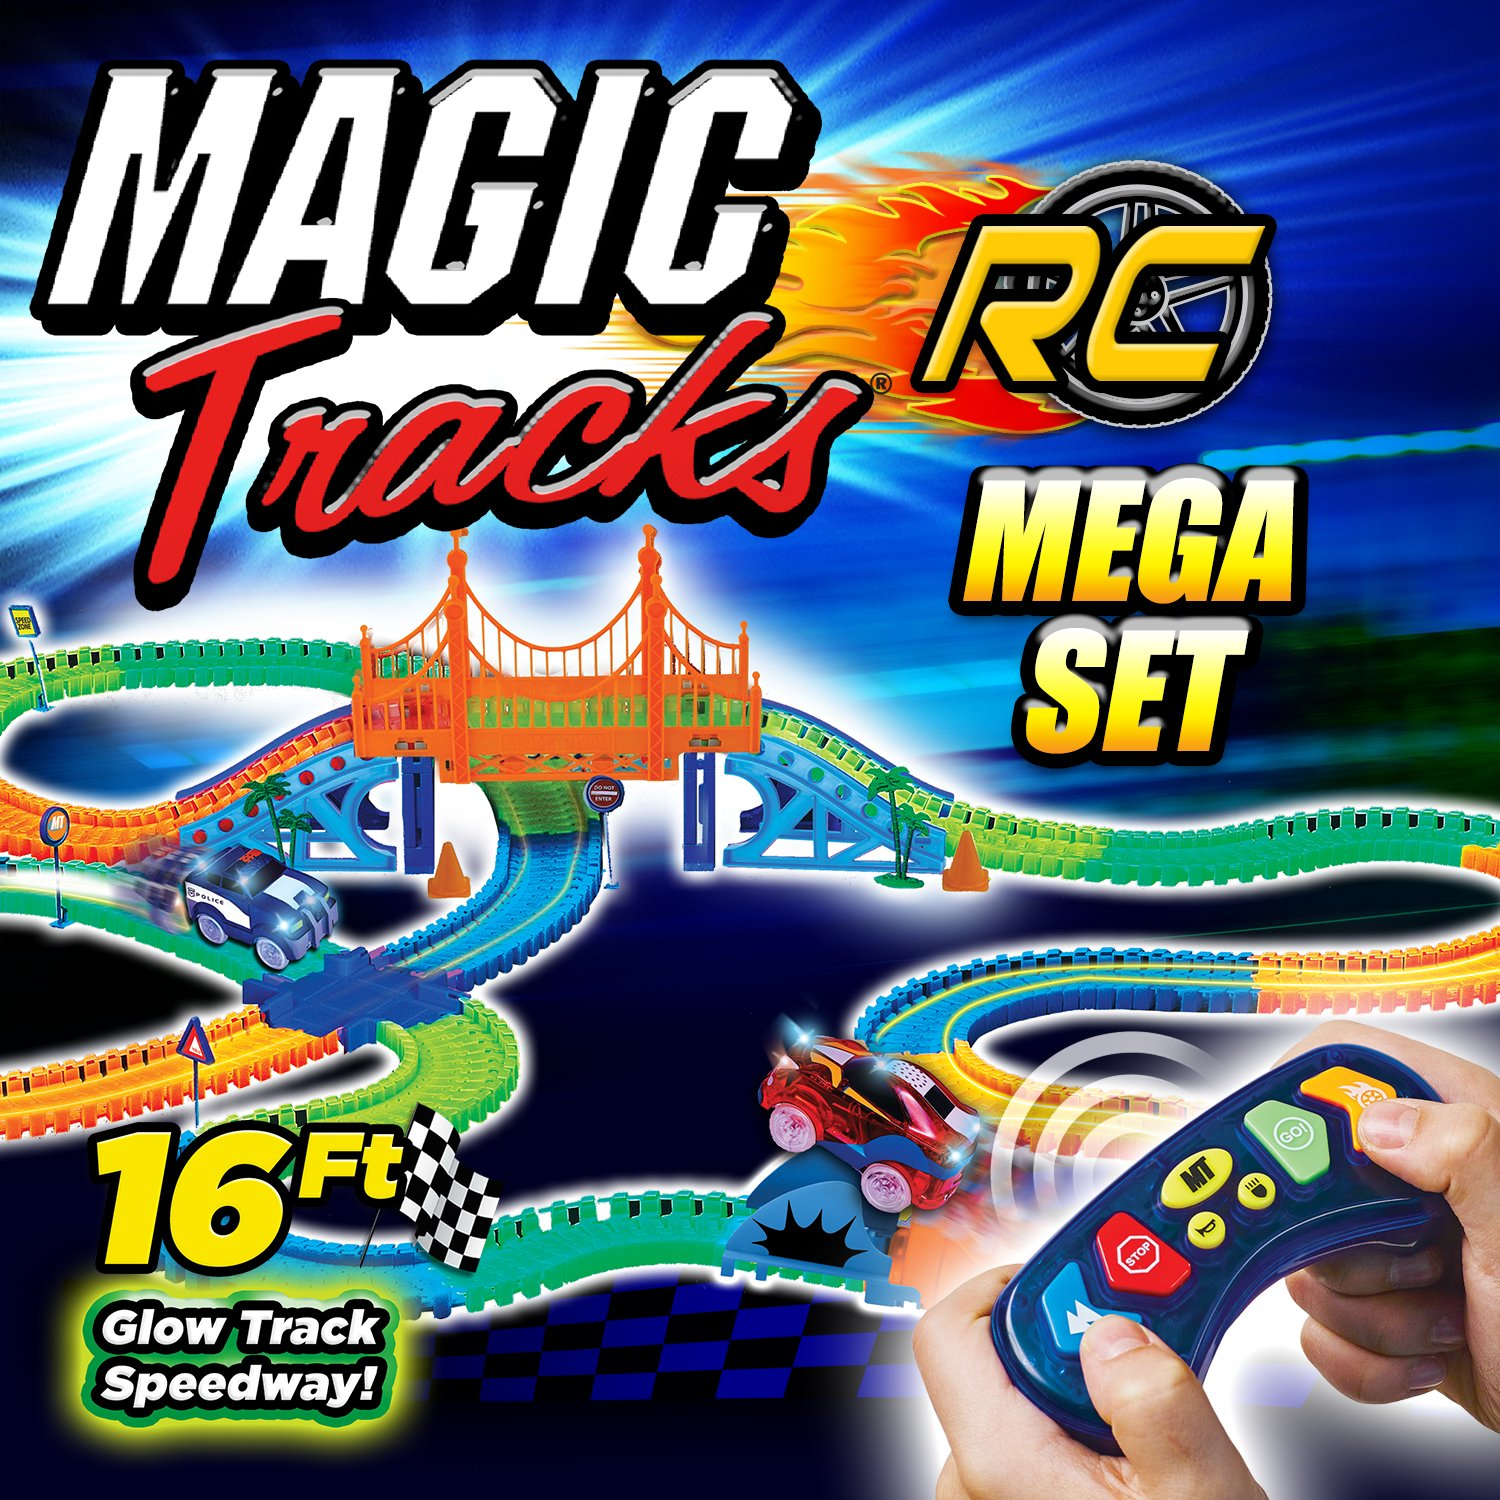 Amazon.com: Ontel Magic Tracks Mega RC with 2 Remote Control Turbo Race Cars and 16 ft of Flexible, Bendable Glow in the Dark Racetrack, As Seen on TV: Home ...